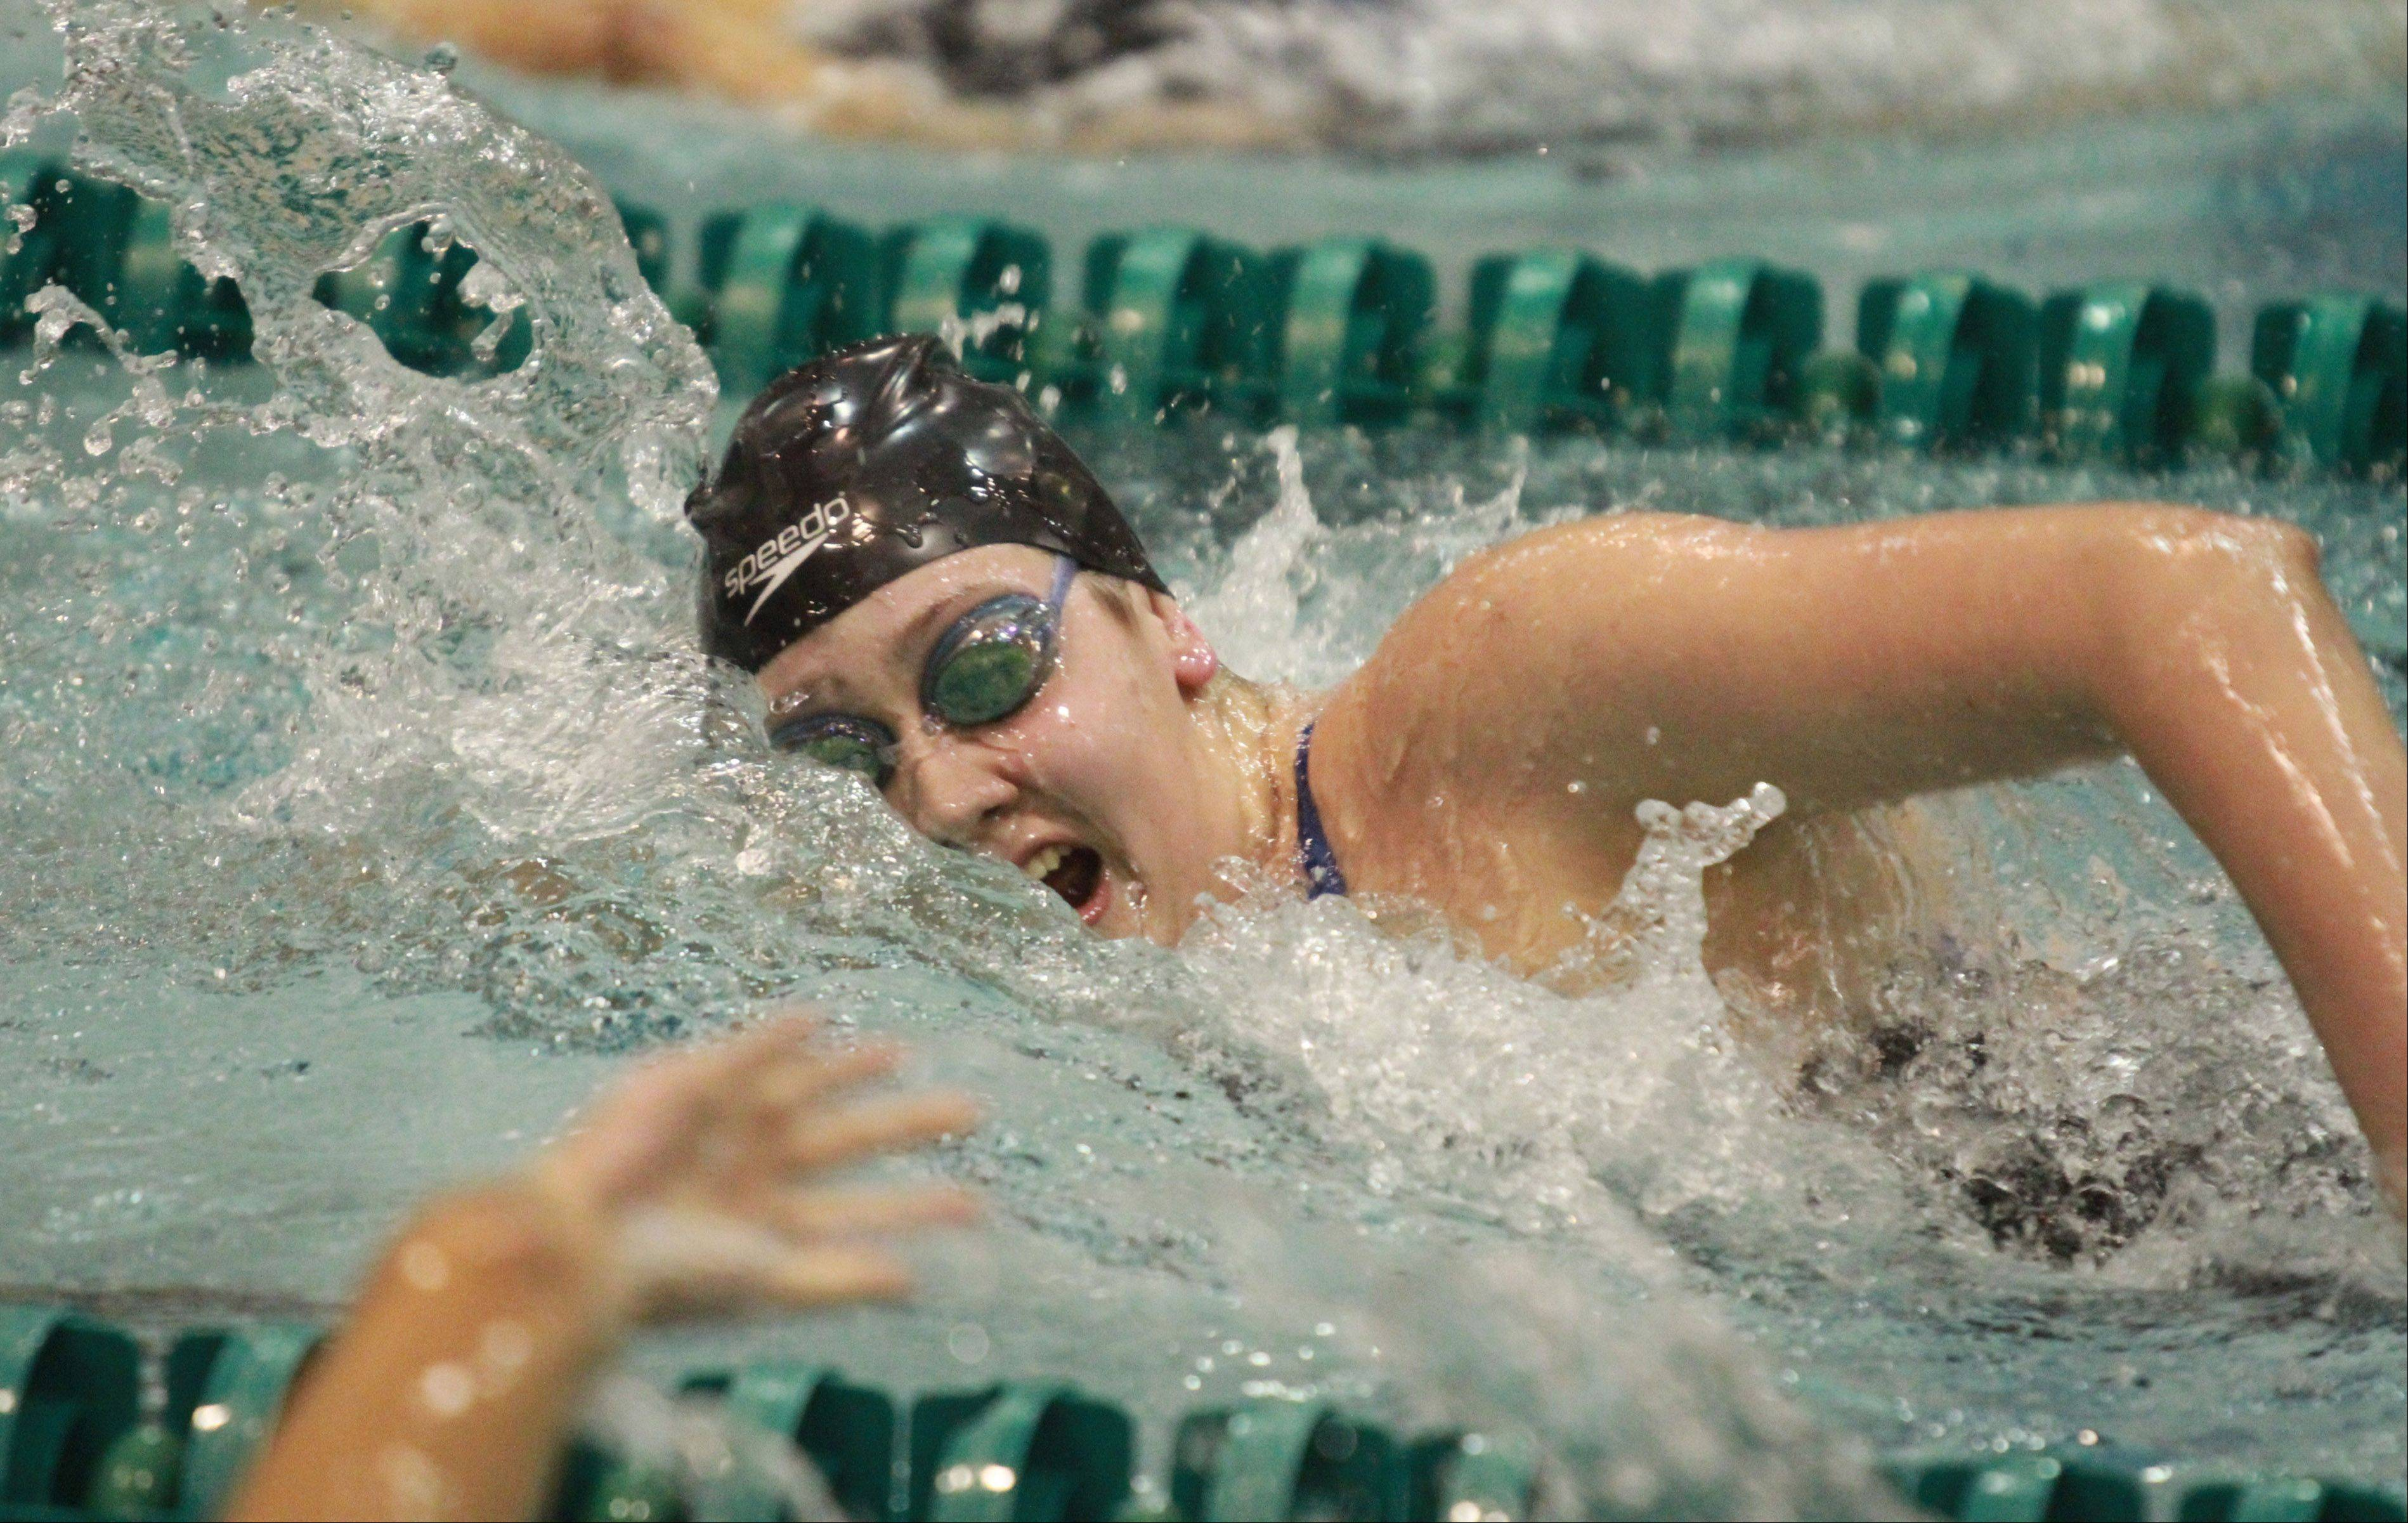 George LeClaire/gleclaire@dailyherald.comSt. Charles North's Monica Guyett finished 8th in the 500 yard freestyle at the girls state swimming finals on Saturday at New Trier.